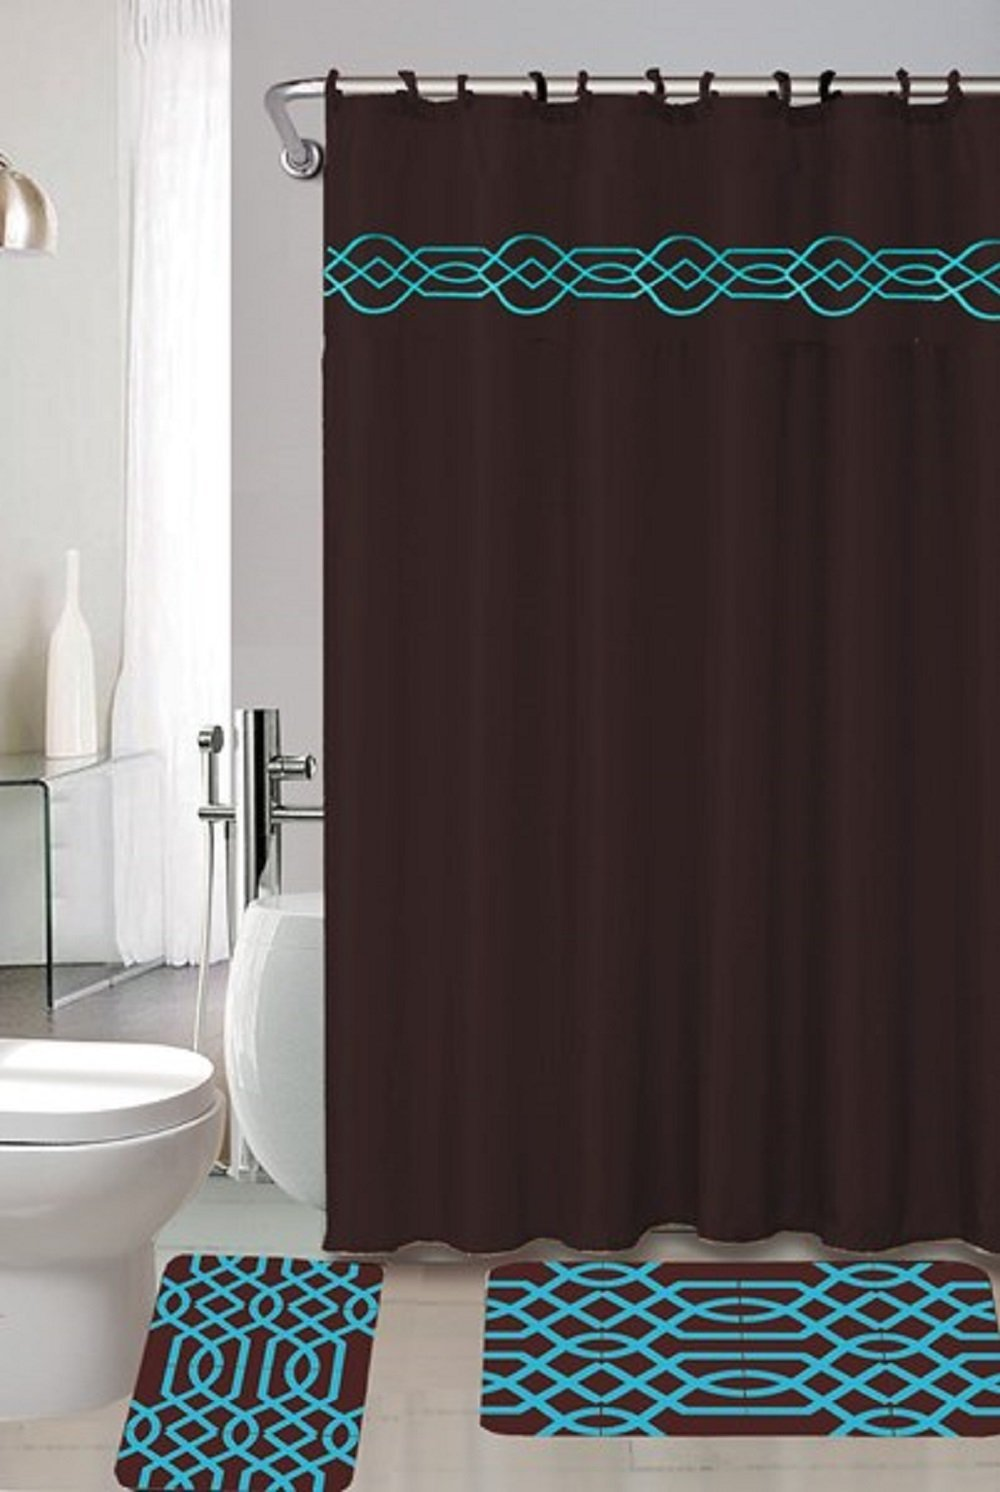 4 Piece Bath Set- Chocolate brown turquoise blue Polypropylene Mats ...